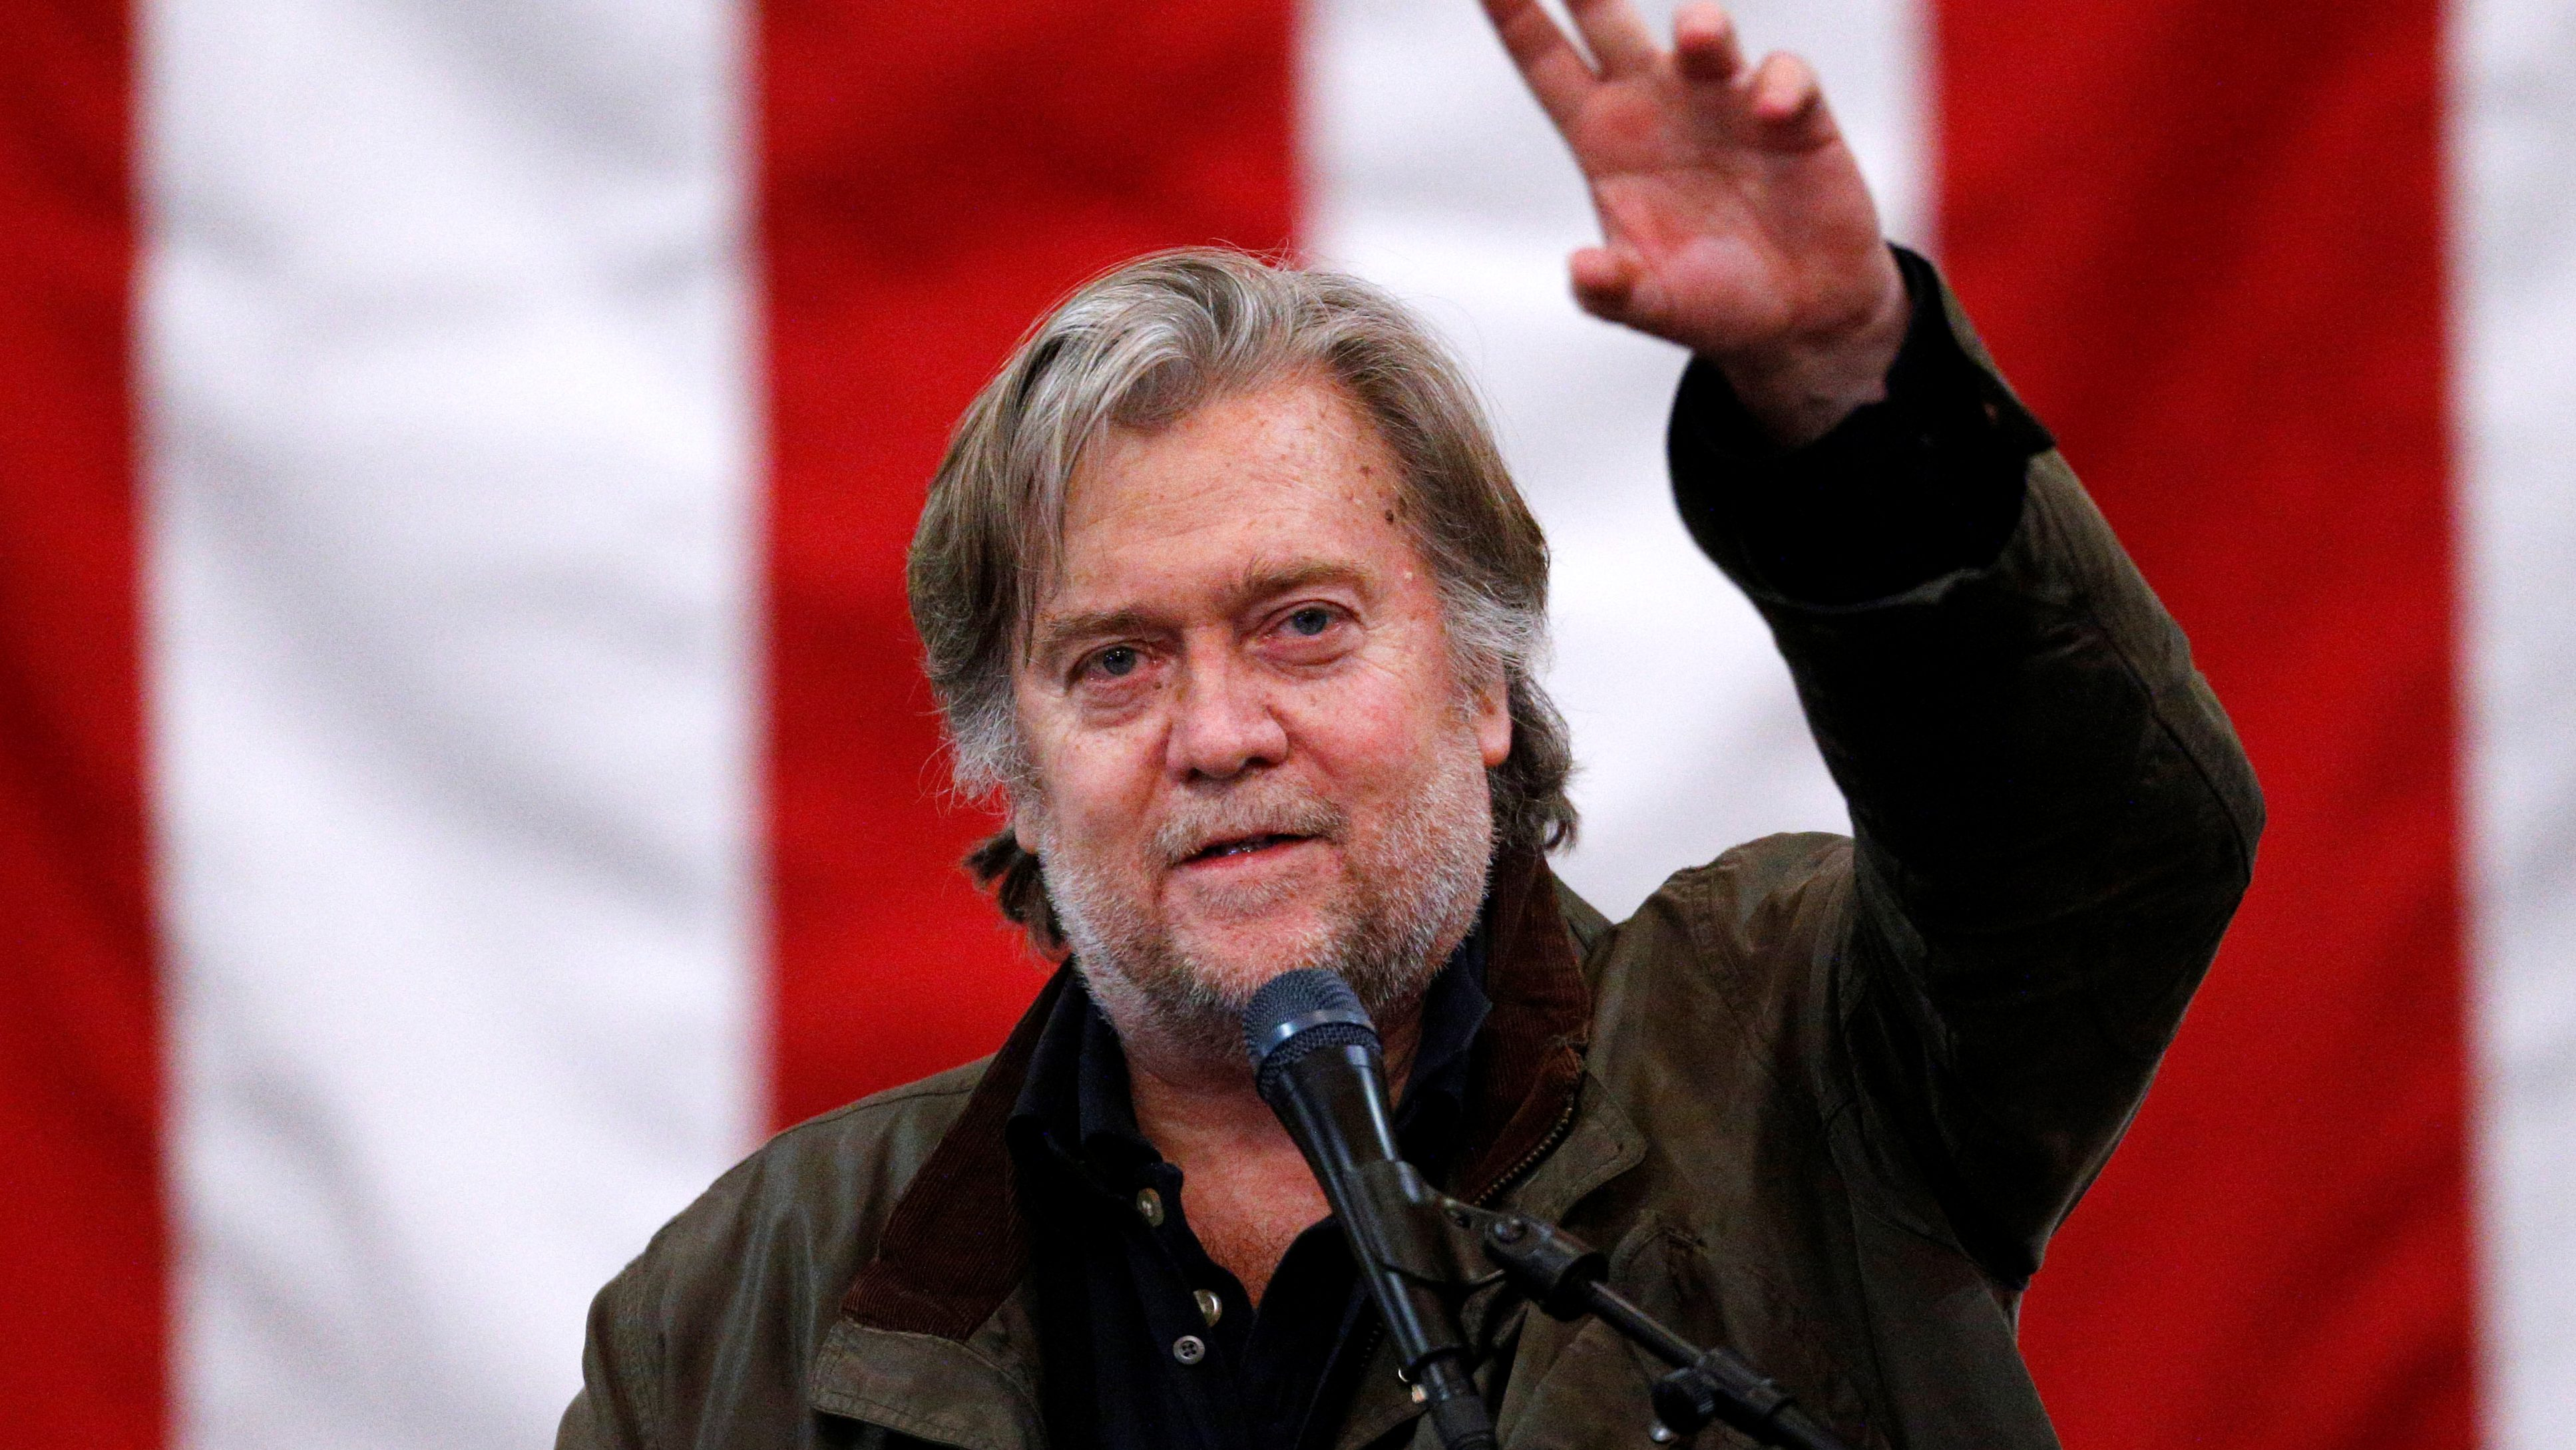 Former White House Chief Strategist Steve Bannon speaks during a campaign rally for Republican candidate for U.S. Senate Judge Roy Moore in Midland City, Alabama, U.S., December 11, 2017.  REUTERS/Jonathan Bachman - RC1F0BDDAA70